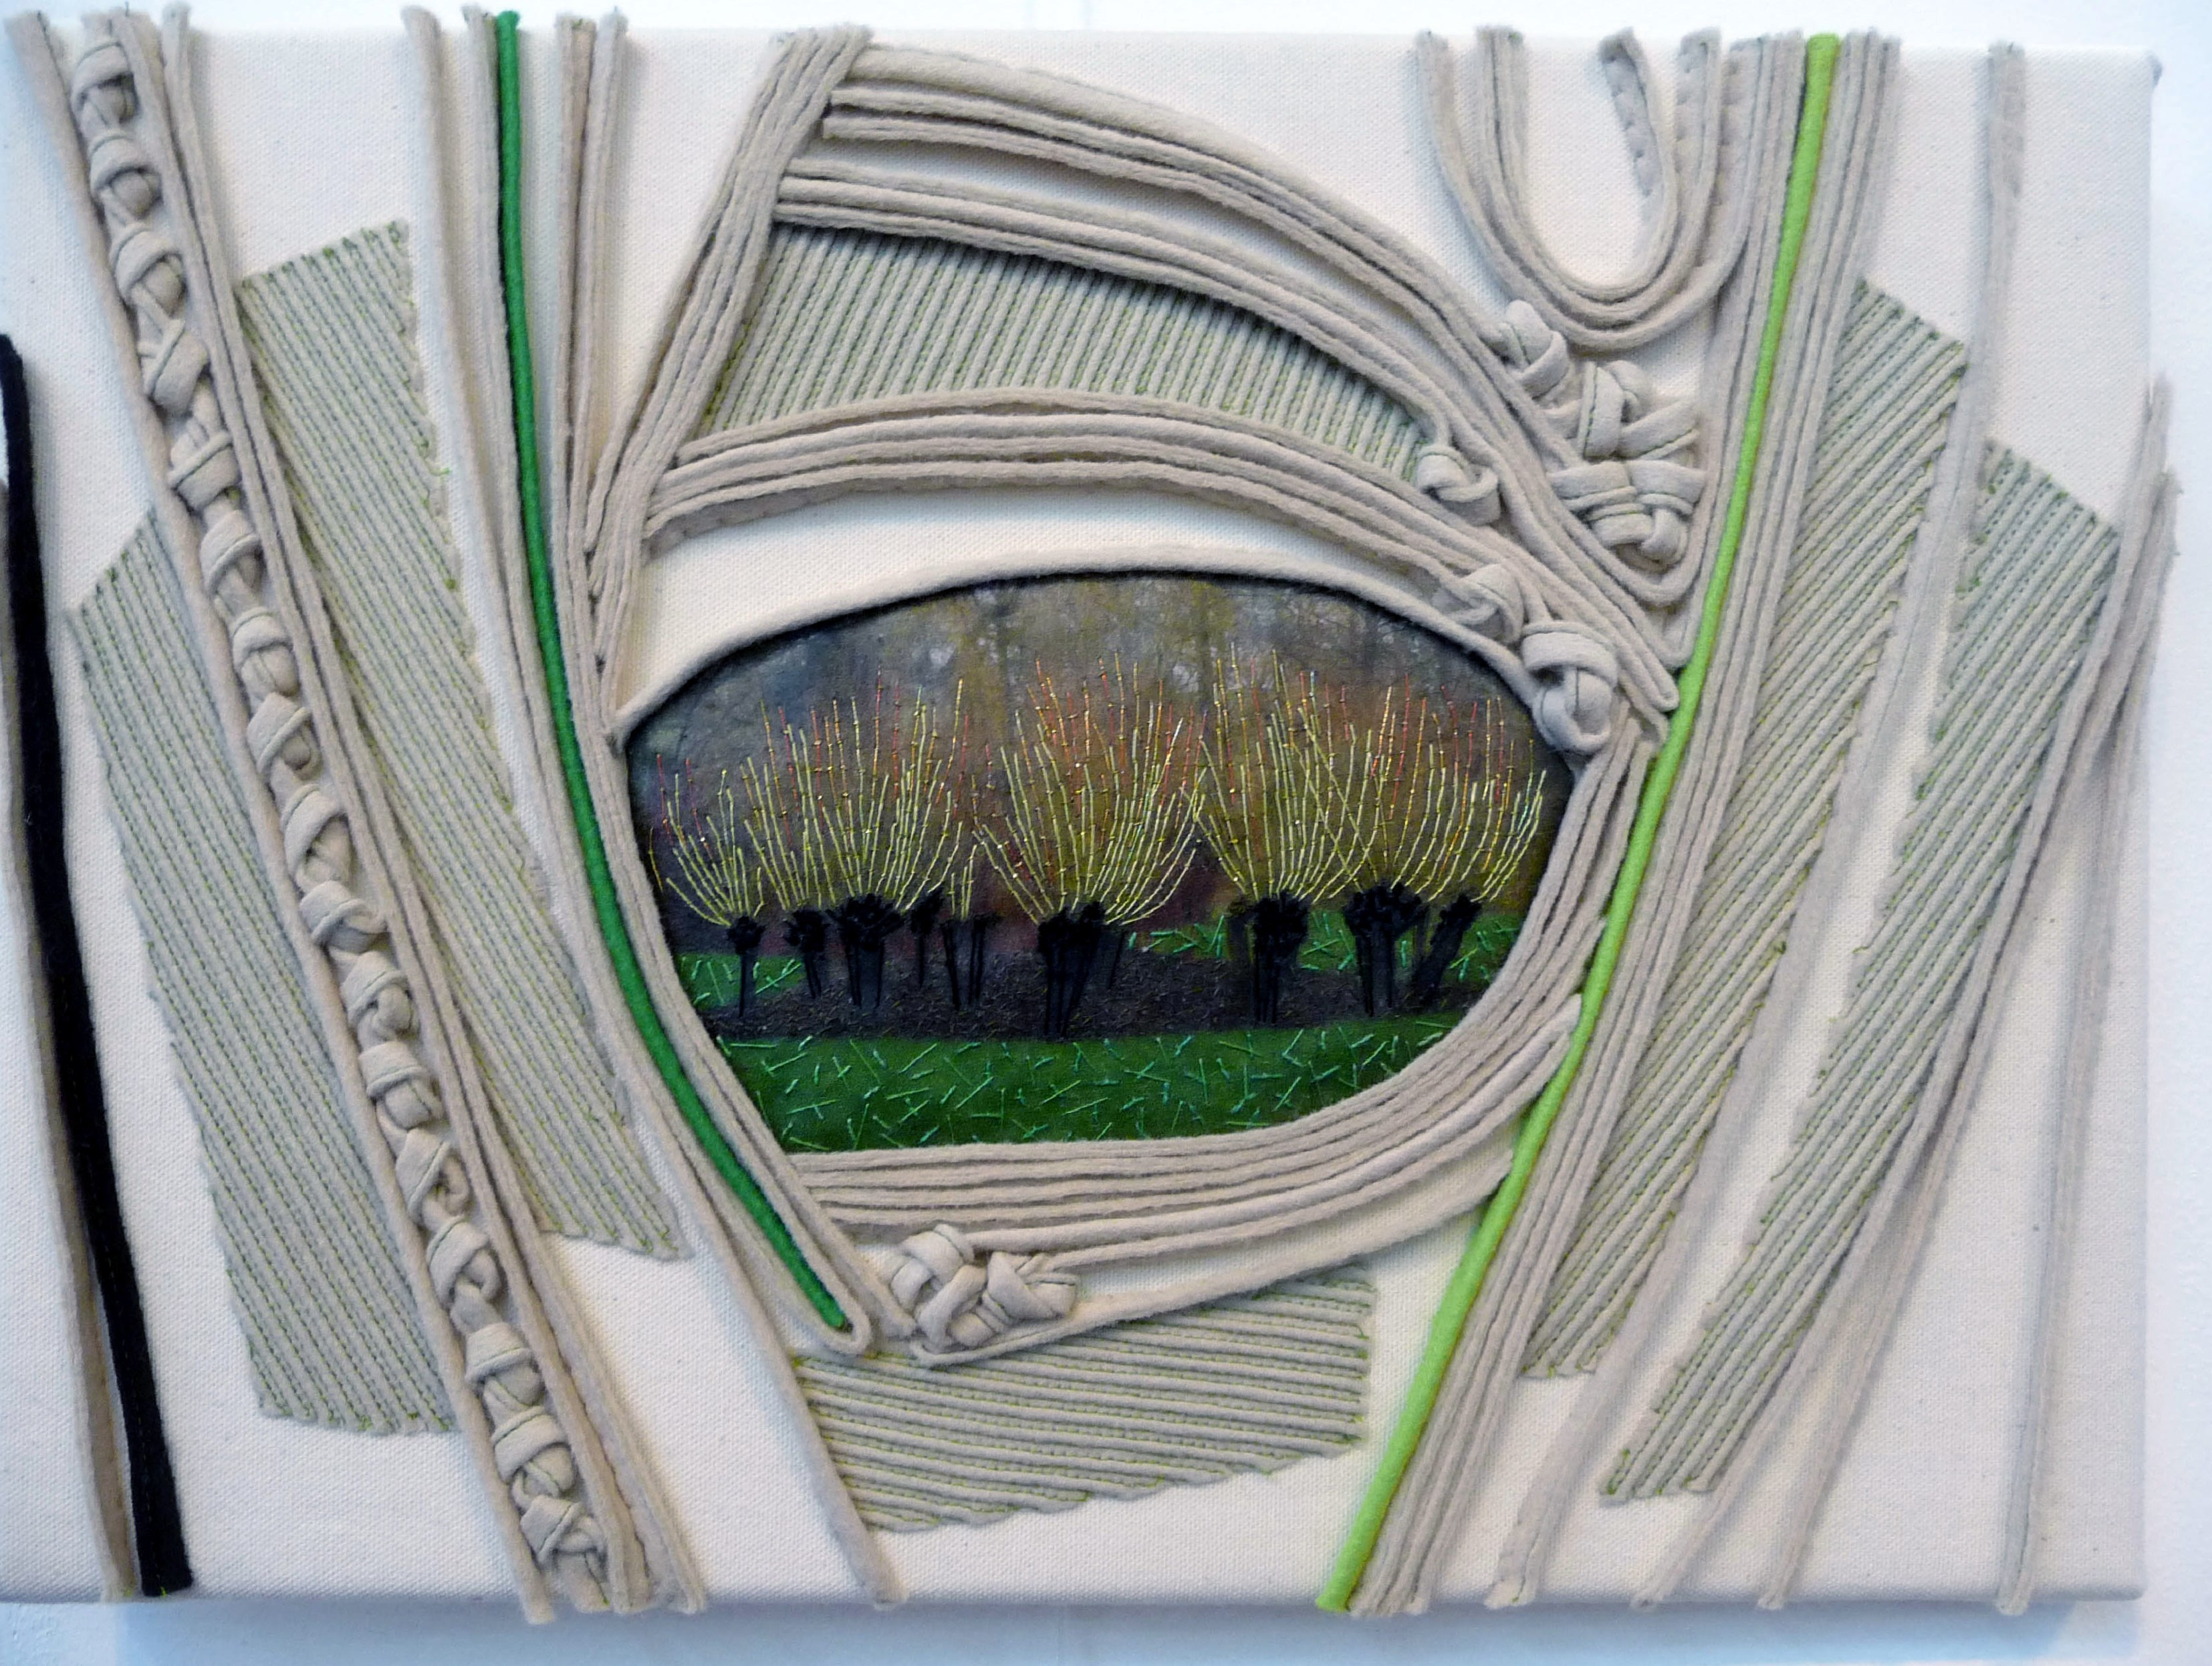 entry to Capability Brown Festival with Embroiderers' Guild, CORNUS AUREA IN WINTER AT LEEDS CASTLE by Diana Springall